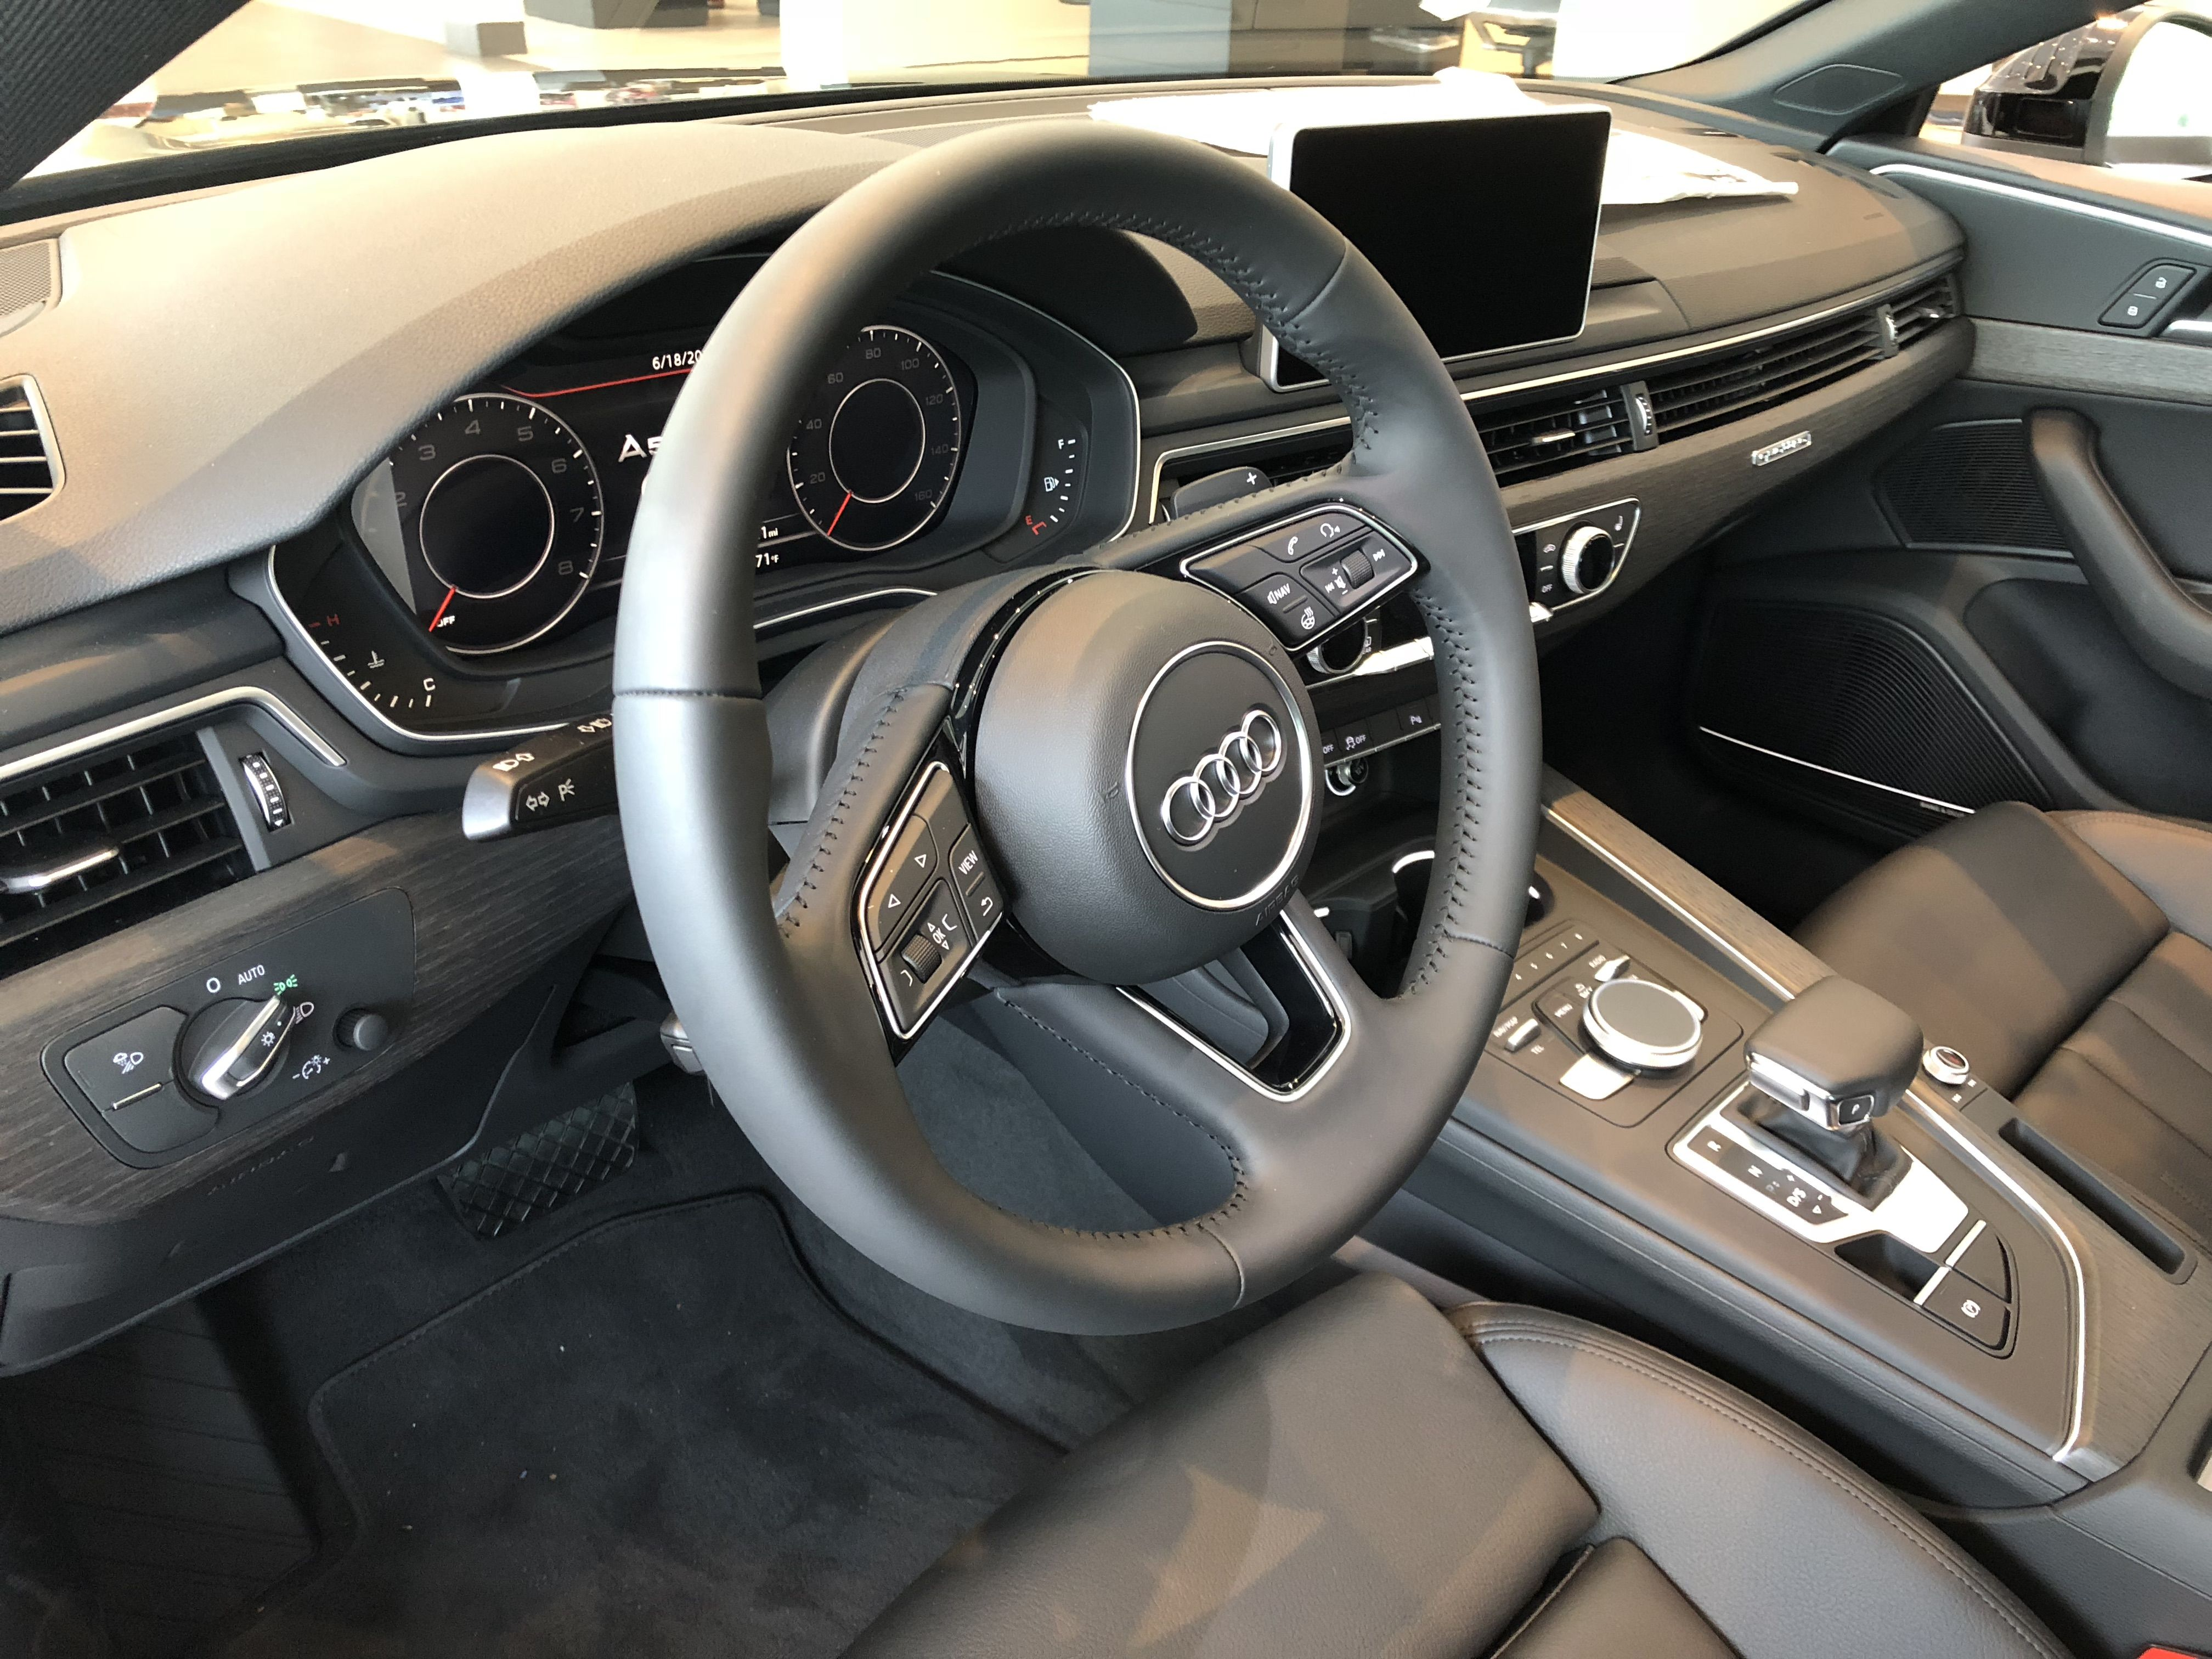 View Of The Steering Wheel And Controls On The 2018 Audi A5 With Black Interior Leather Standard Vehicle Available A Used Luxury Cars Audi Dealership Audi A5